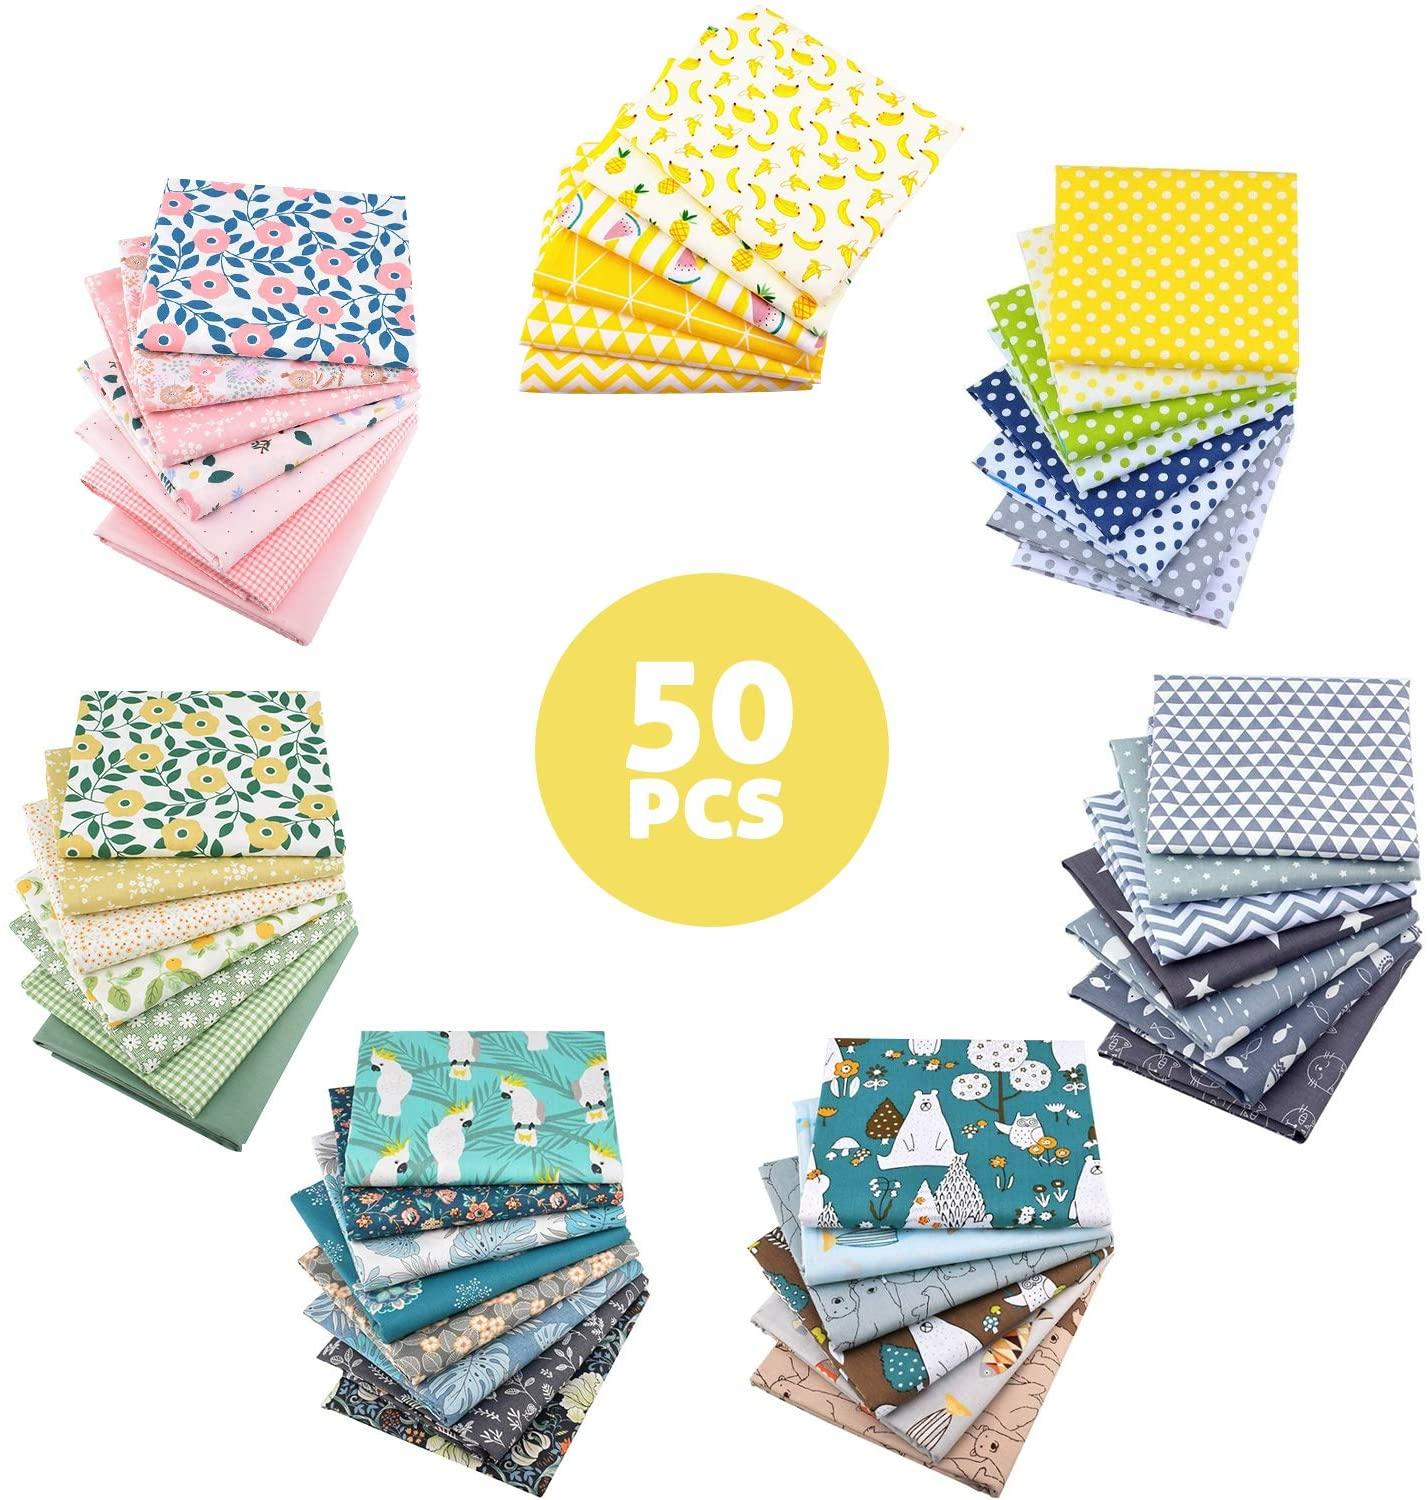 50 Patterns 25cmx25cm Cotton Fabric Printed Cloth Sewing Quilting Fabrics for Patchwork Needlework DIY Handmade Material